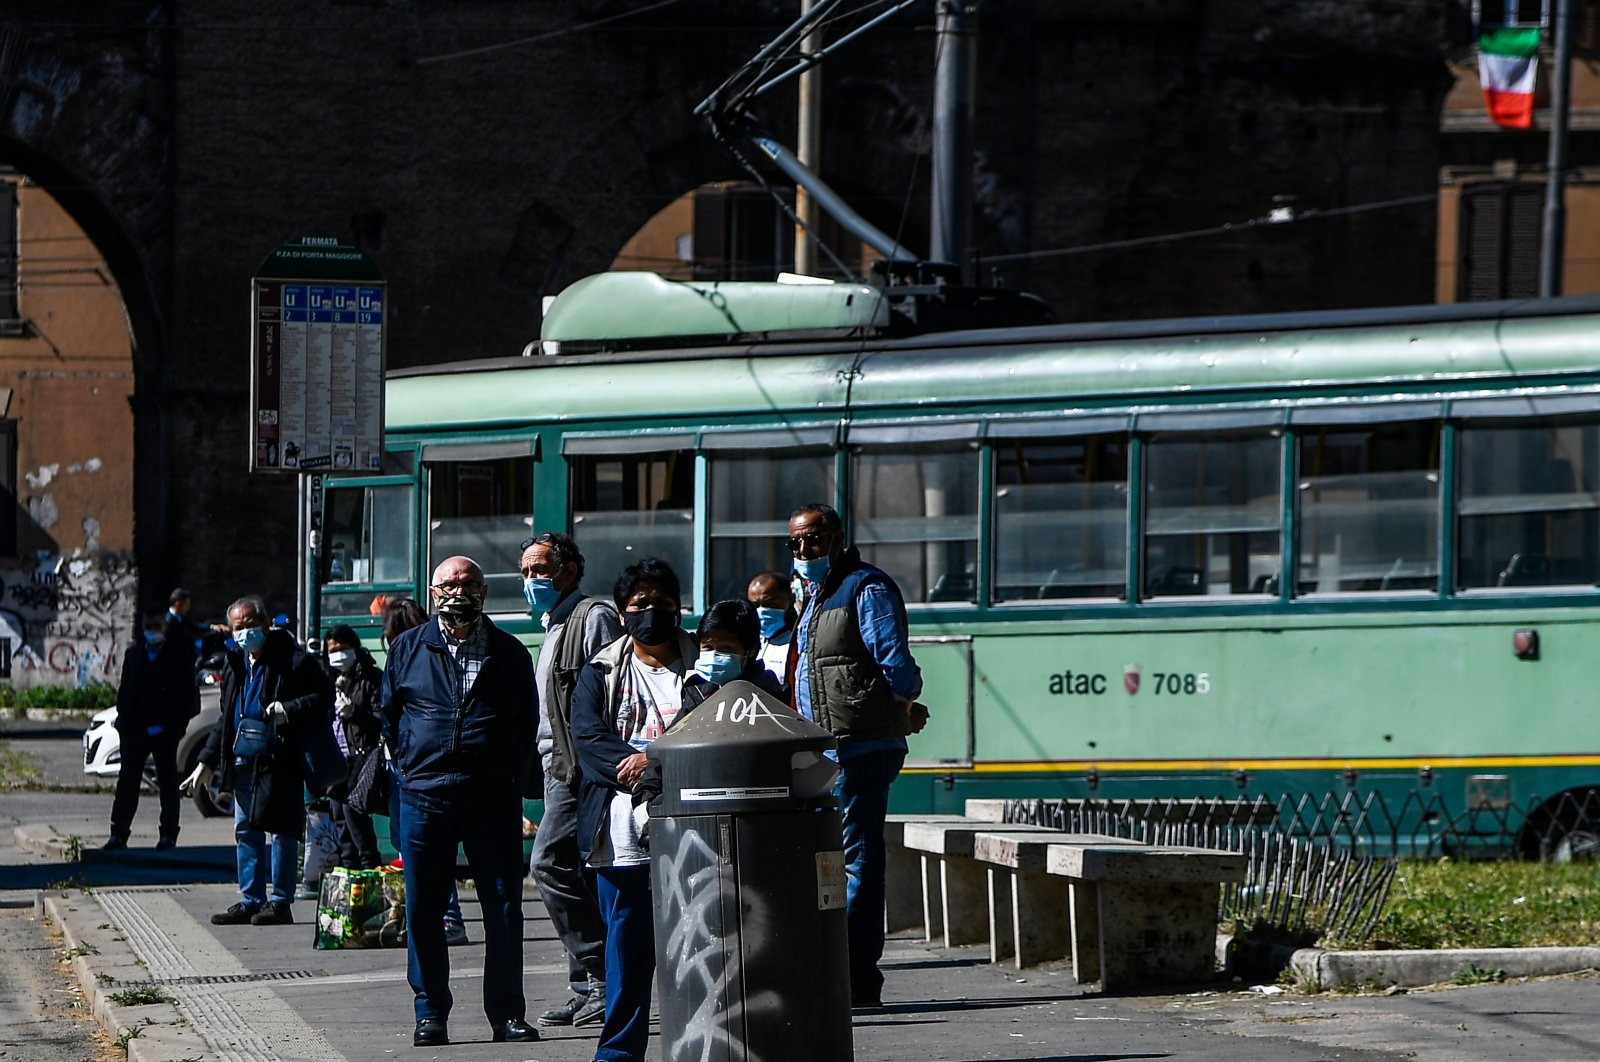 Commuters wait for the tramway at Porta Maggiore in Rome, as Italy starts to ease its lockdown aimed at curbing the spread of COVID-19, May 4, 2020. (AFP Photo)